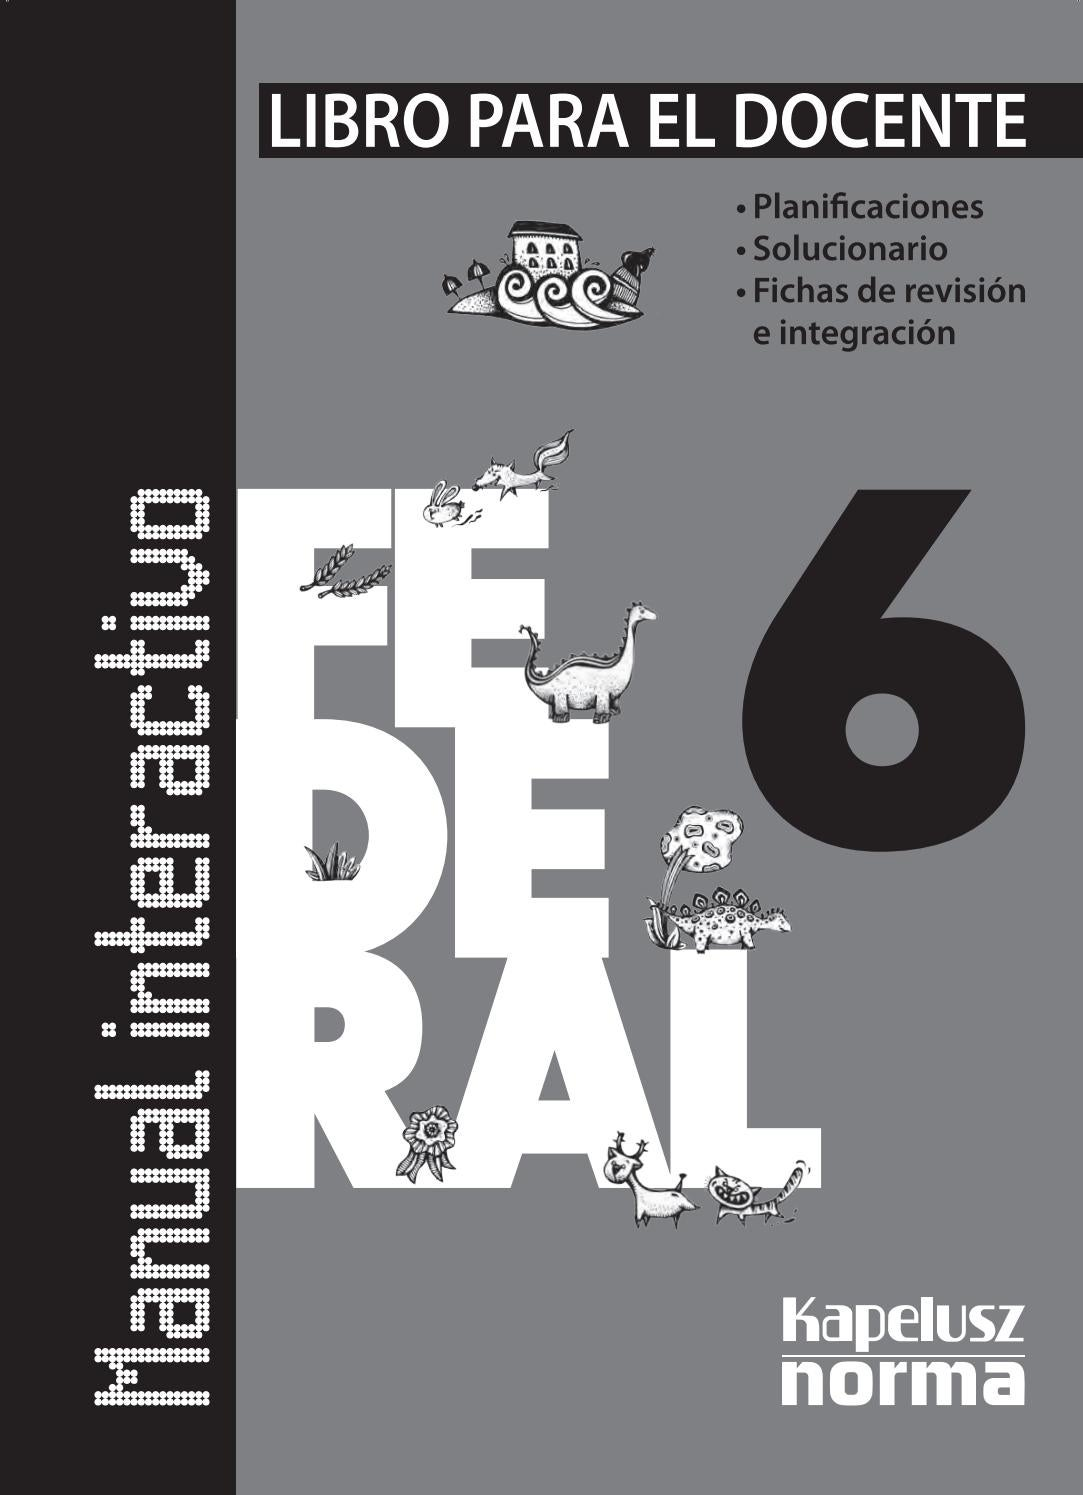 Resumen Del Libro El Secreto Gd Manual Interactivo Fed 6 By Kapelusz Norma Issuu